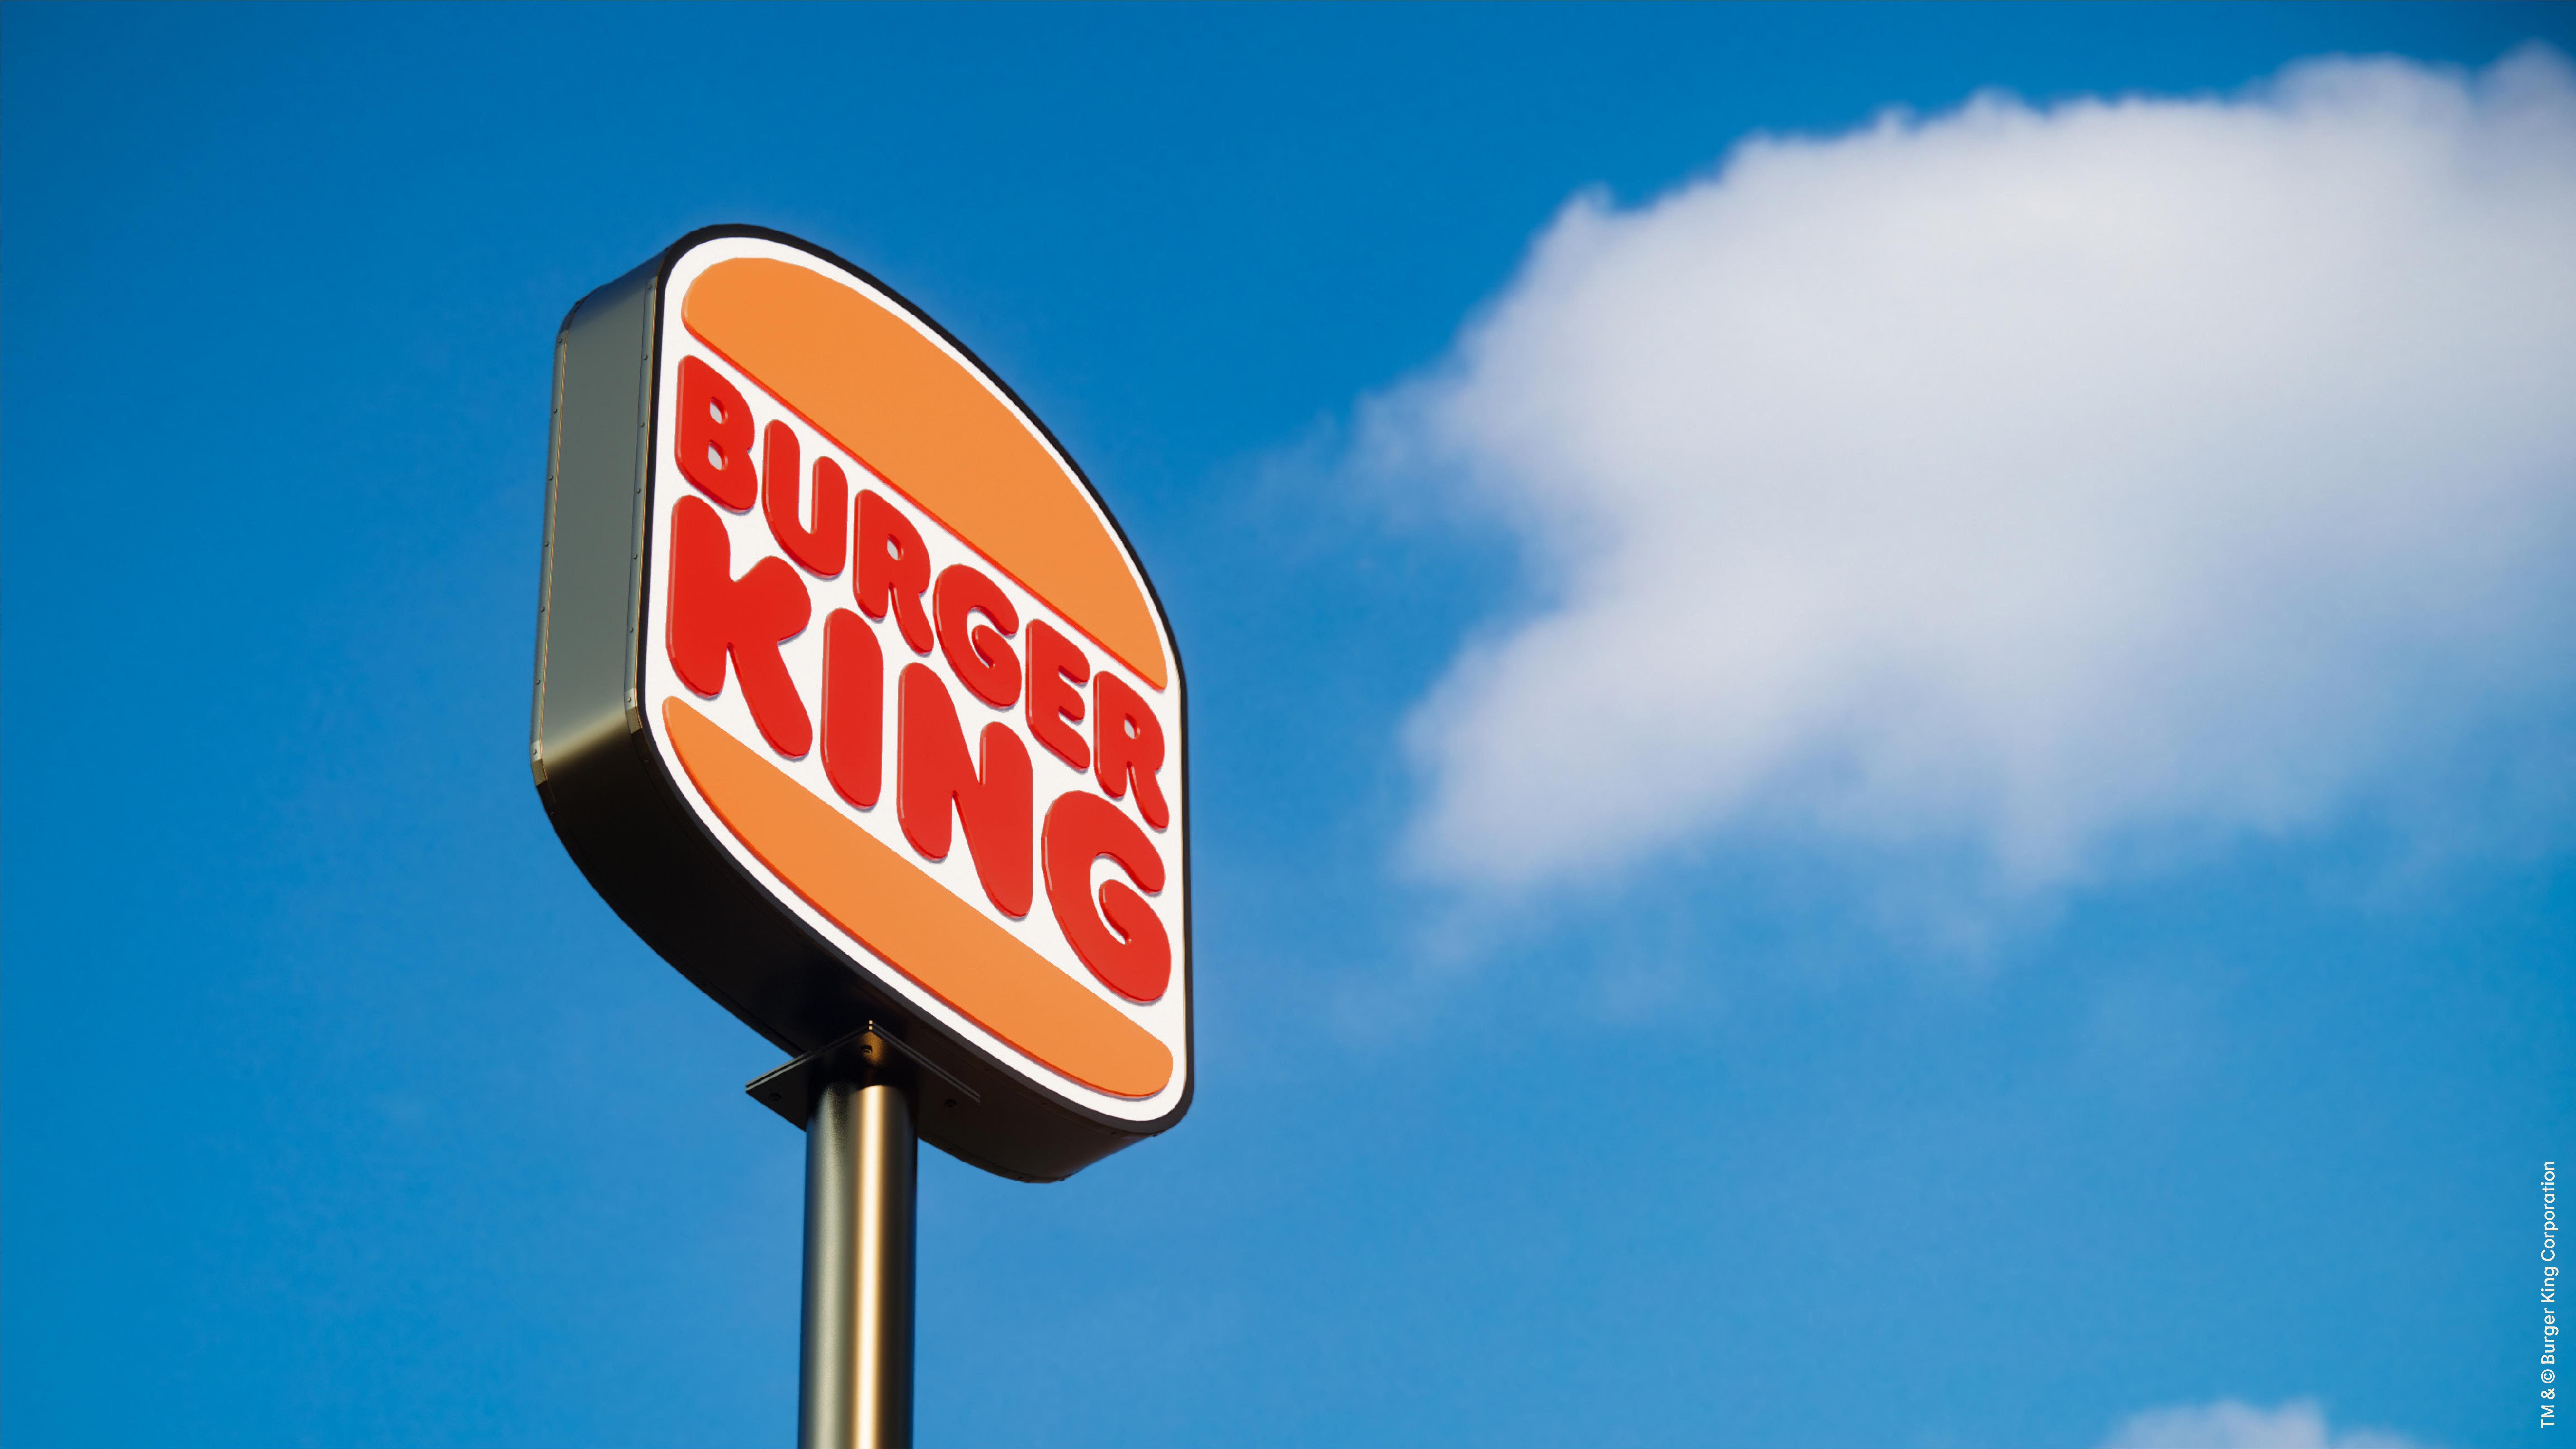 Burger King unveils new logo in brand redesign